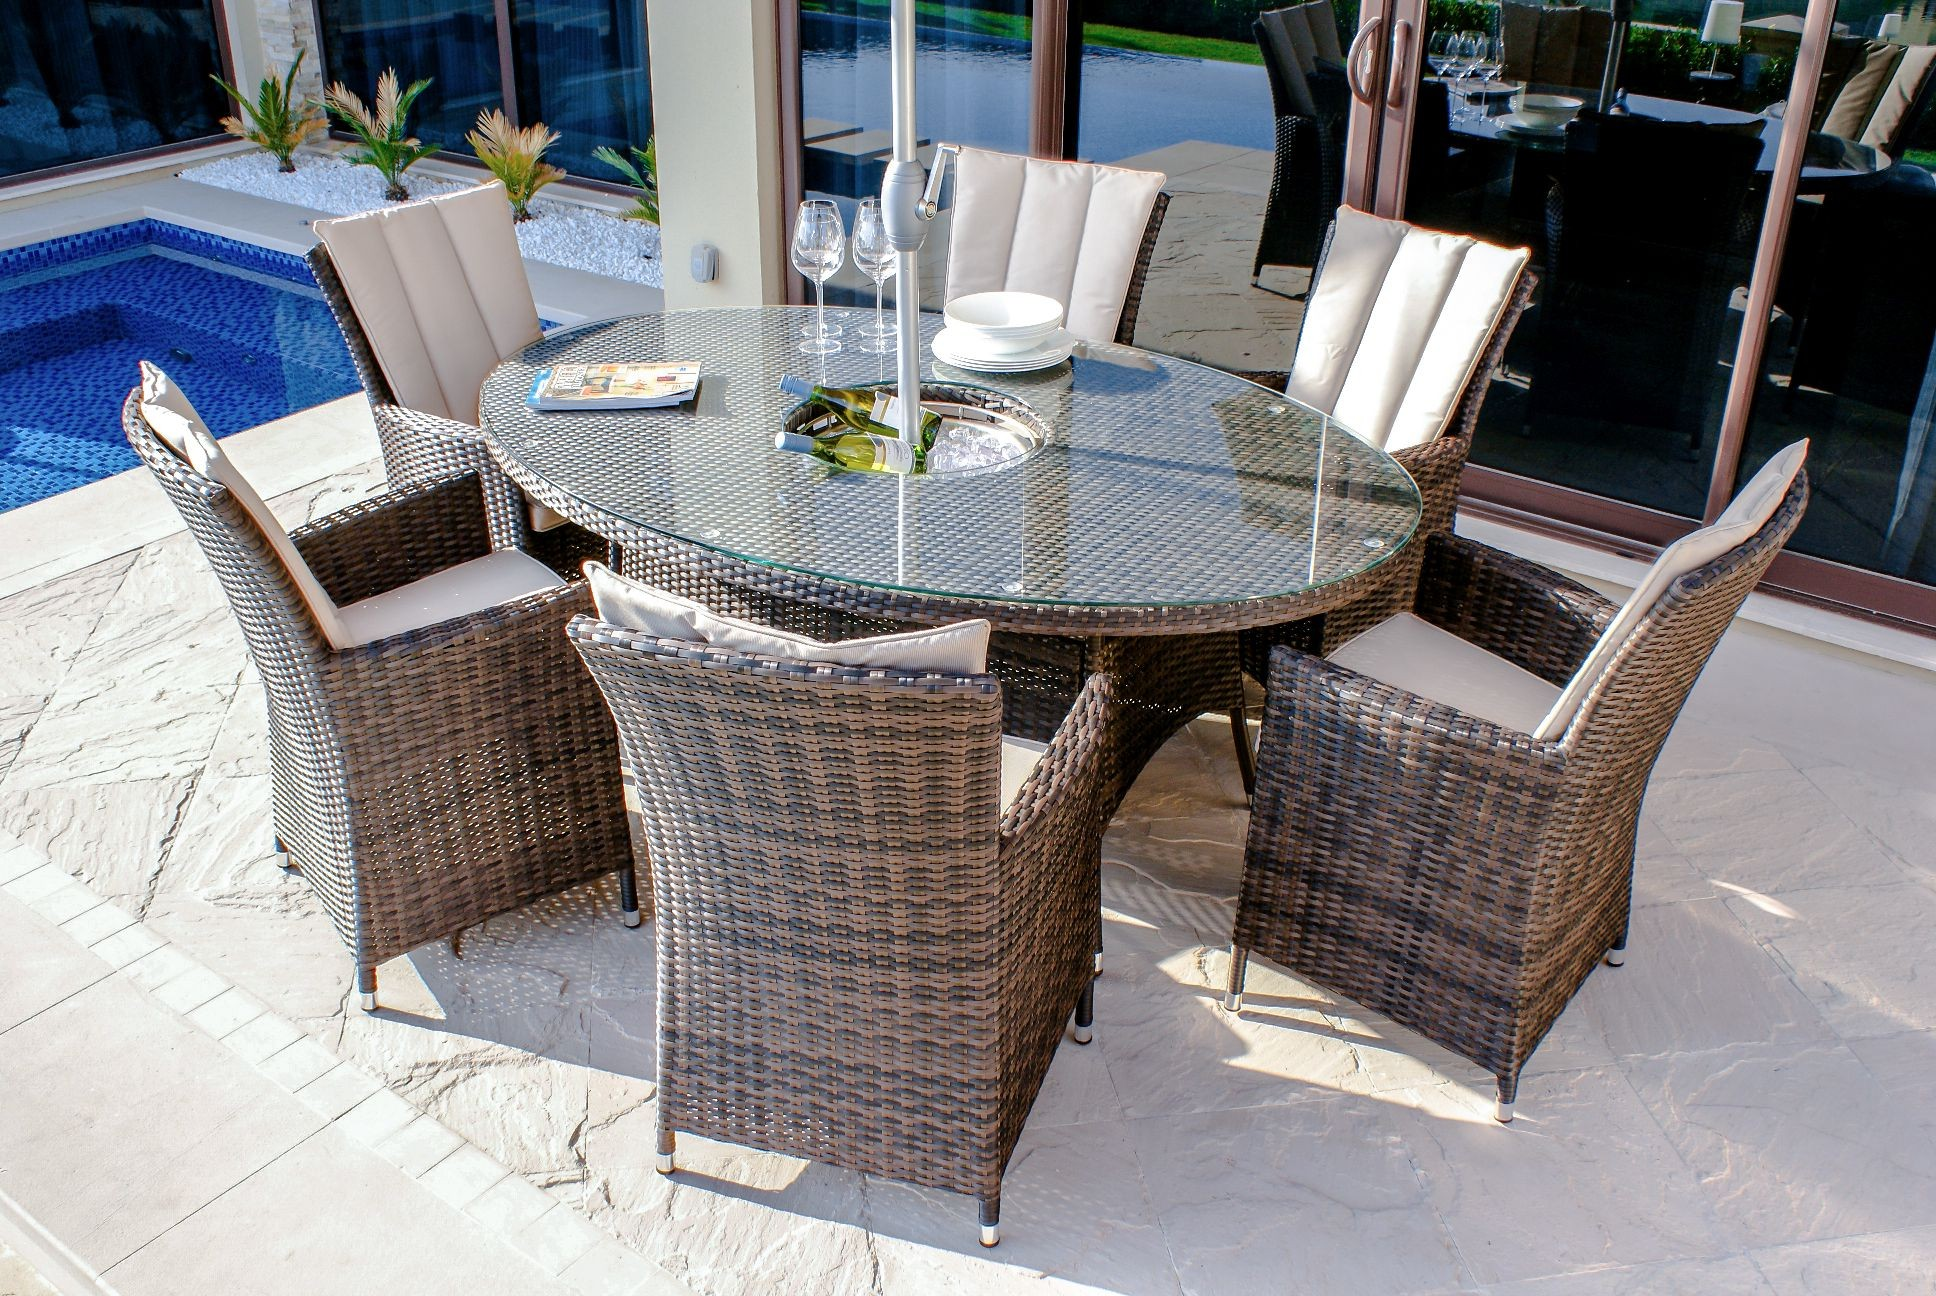 Maze Rattan La 6 Seat Oval Rattan Furniture Set With Ice